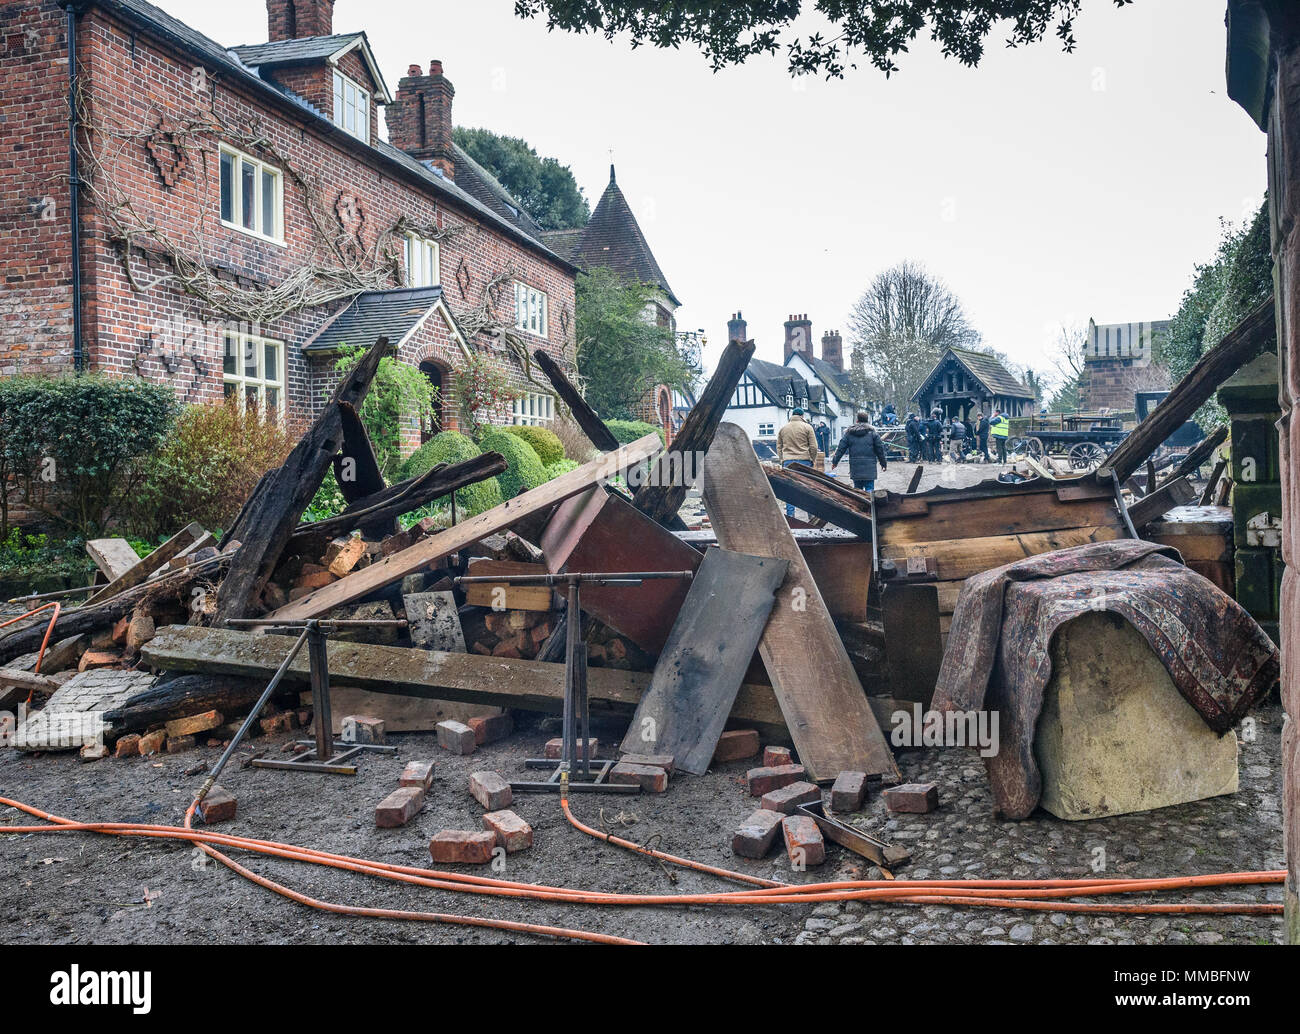 11th April, 2018. Props and debris with flame bars being set up for a dramatic scene in Great Budworth, cheshire Village for war of the worlds. - Stock Image